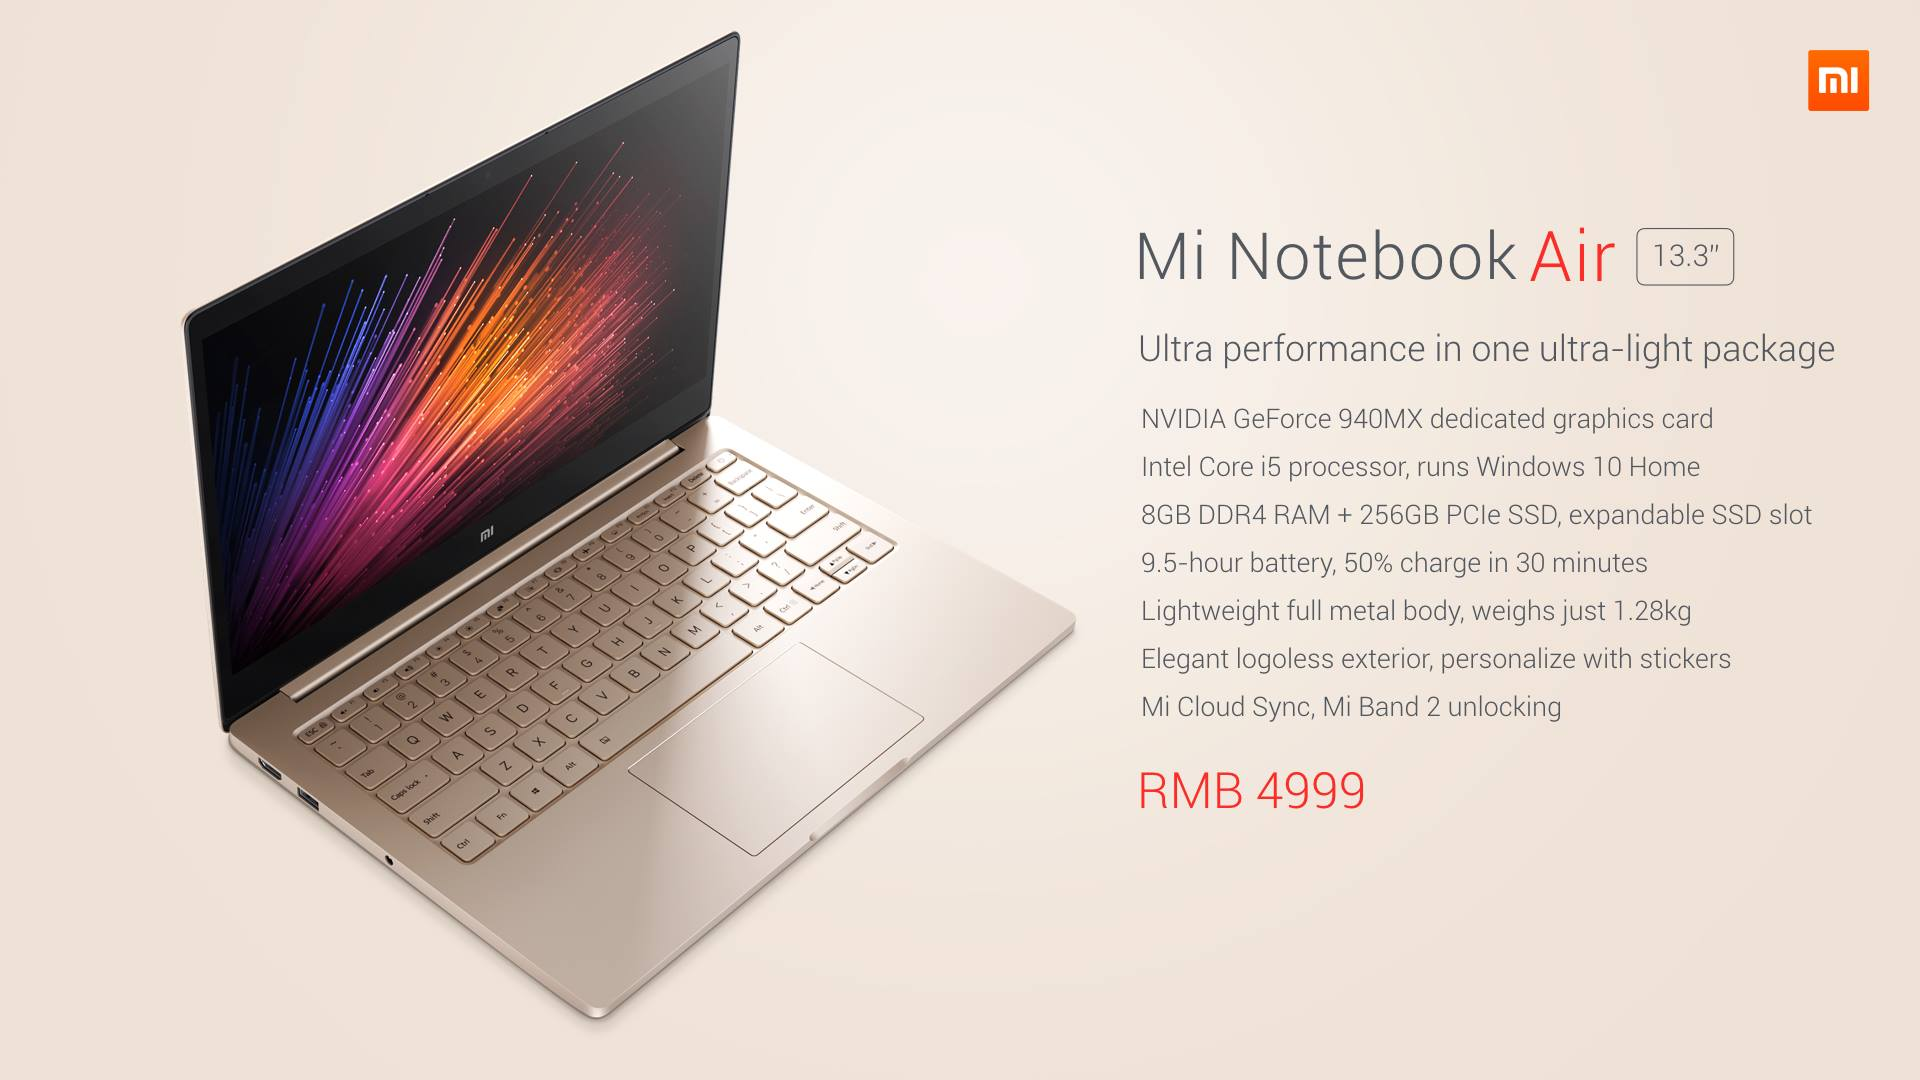 mi notebook air 13710651_10153553233271612_6468089152455099817_o